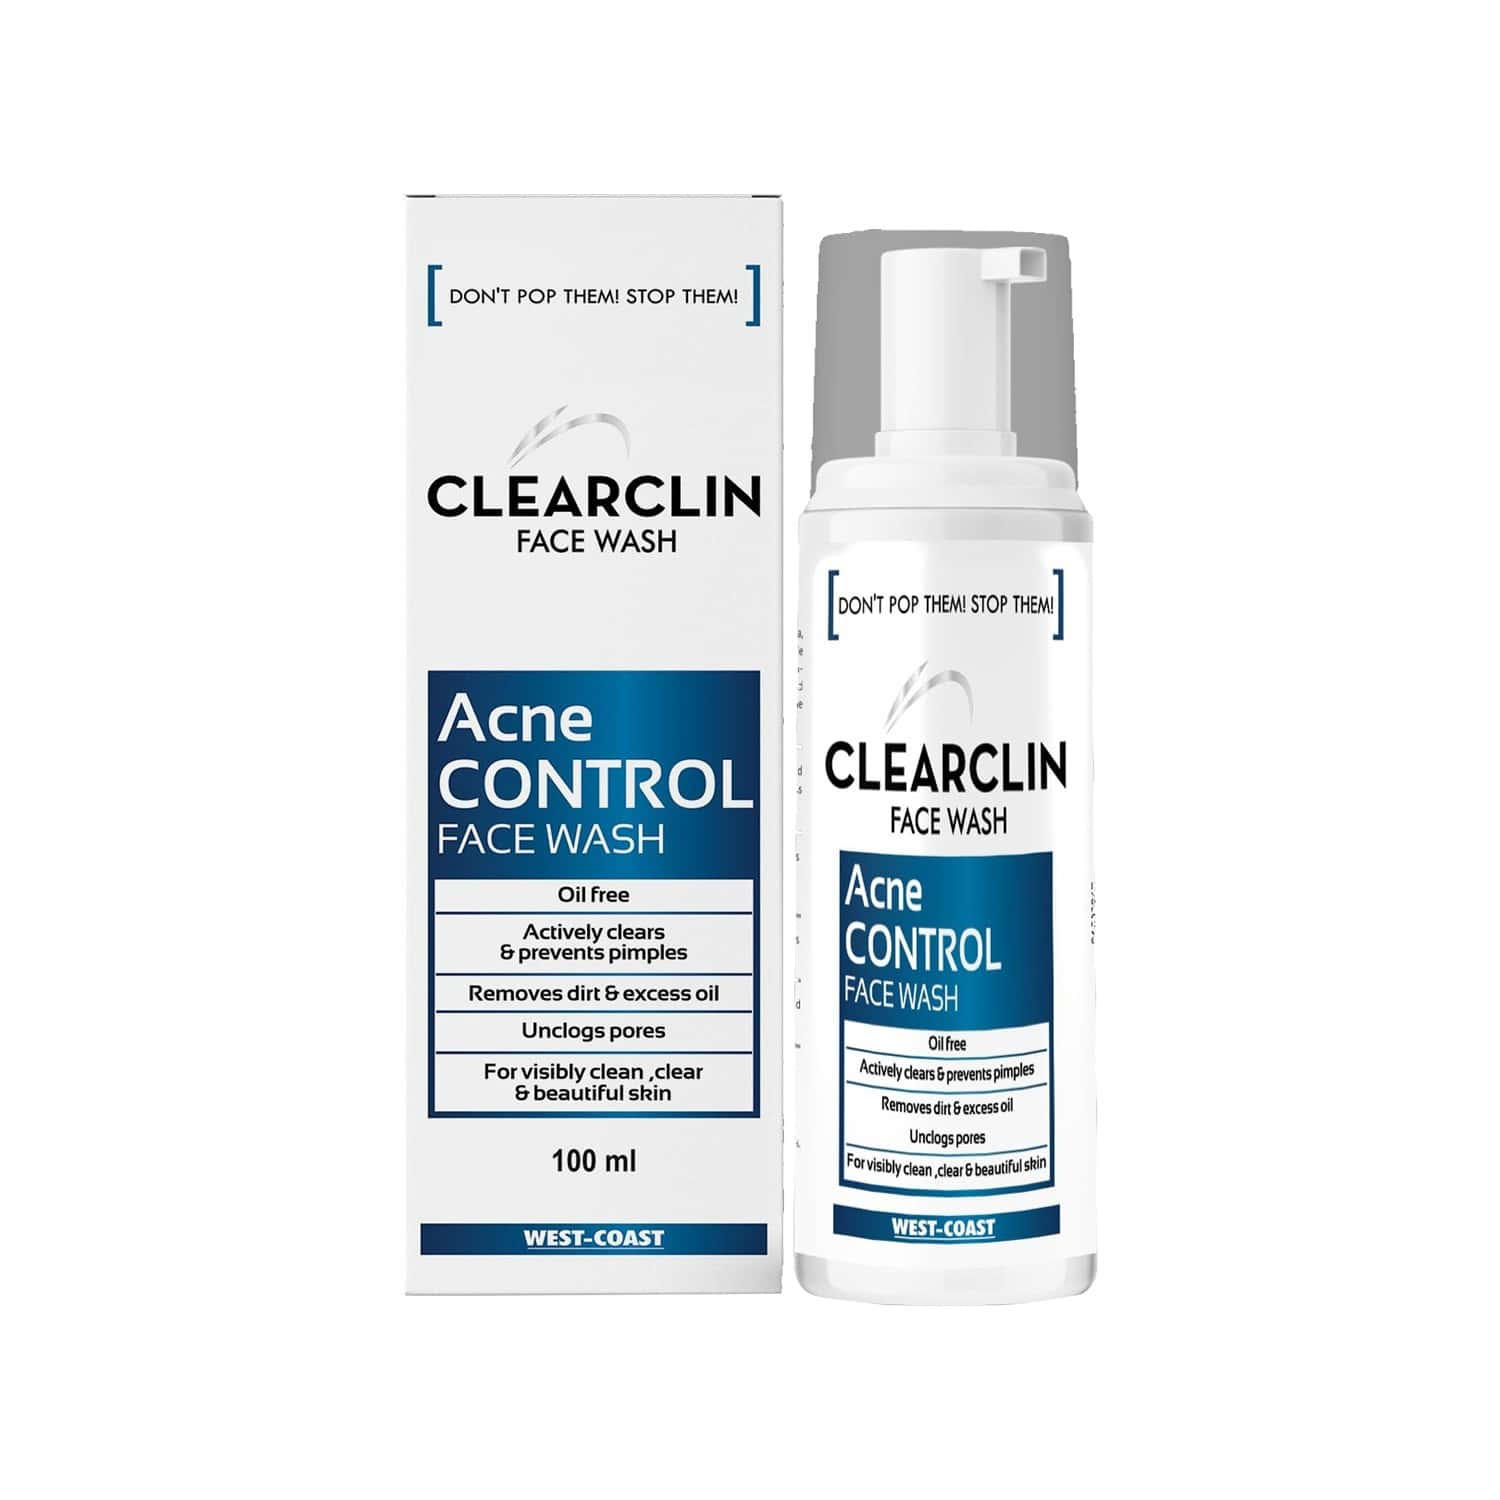 West-coast Clearclin Acne Control Face Wash Bottle Of 60 Ml